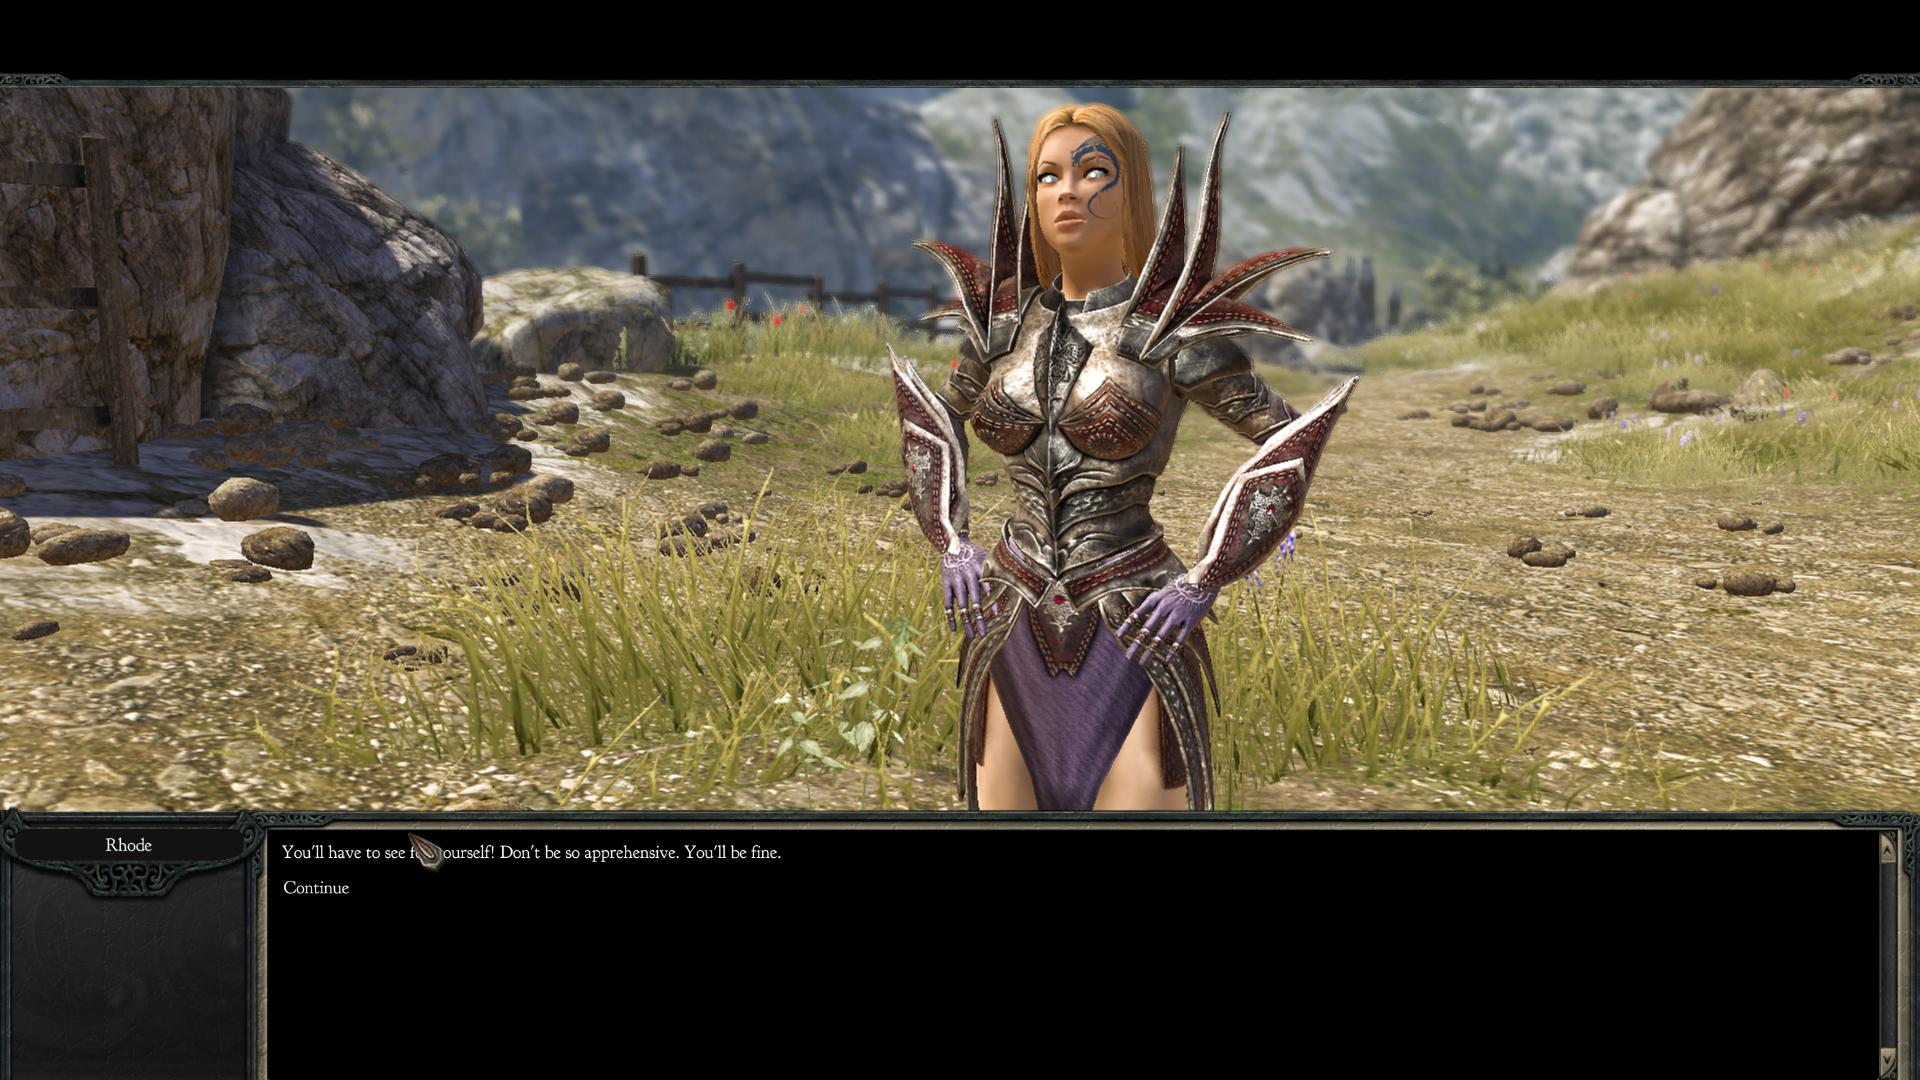 Divinity 2 The Dragon Knight Saga Review Game Release Is A Wise Investment For Larian Studios Dragon knight knight armor dragon age tes skyrim skyrim mods armor concept the witcher elder scrolls video games. manapool